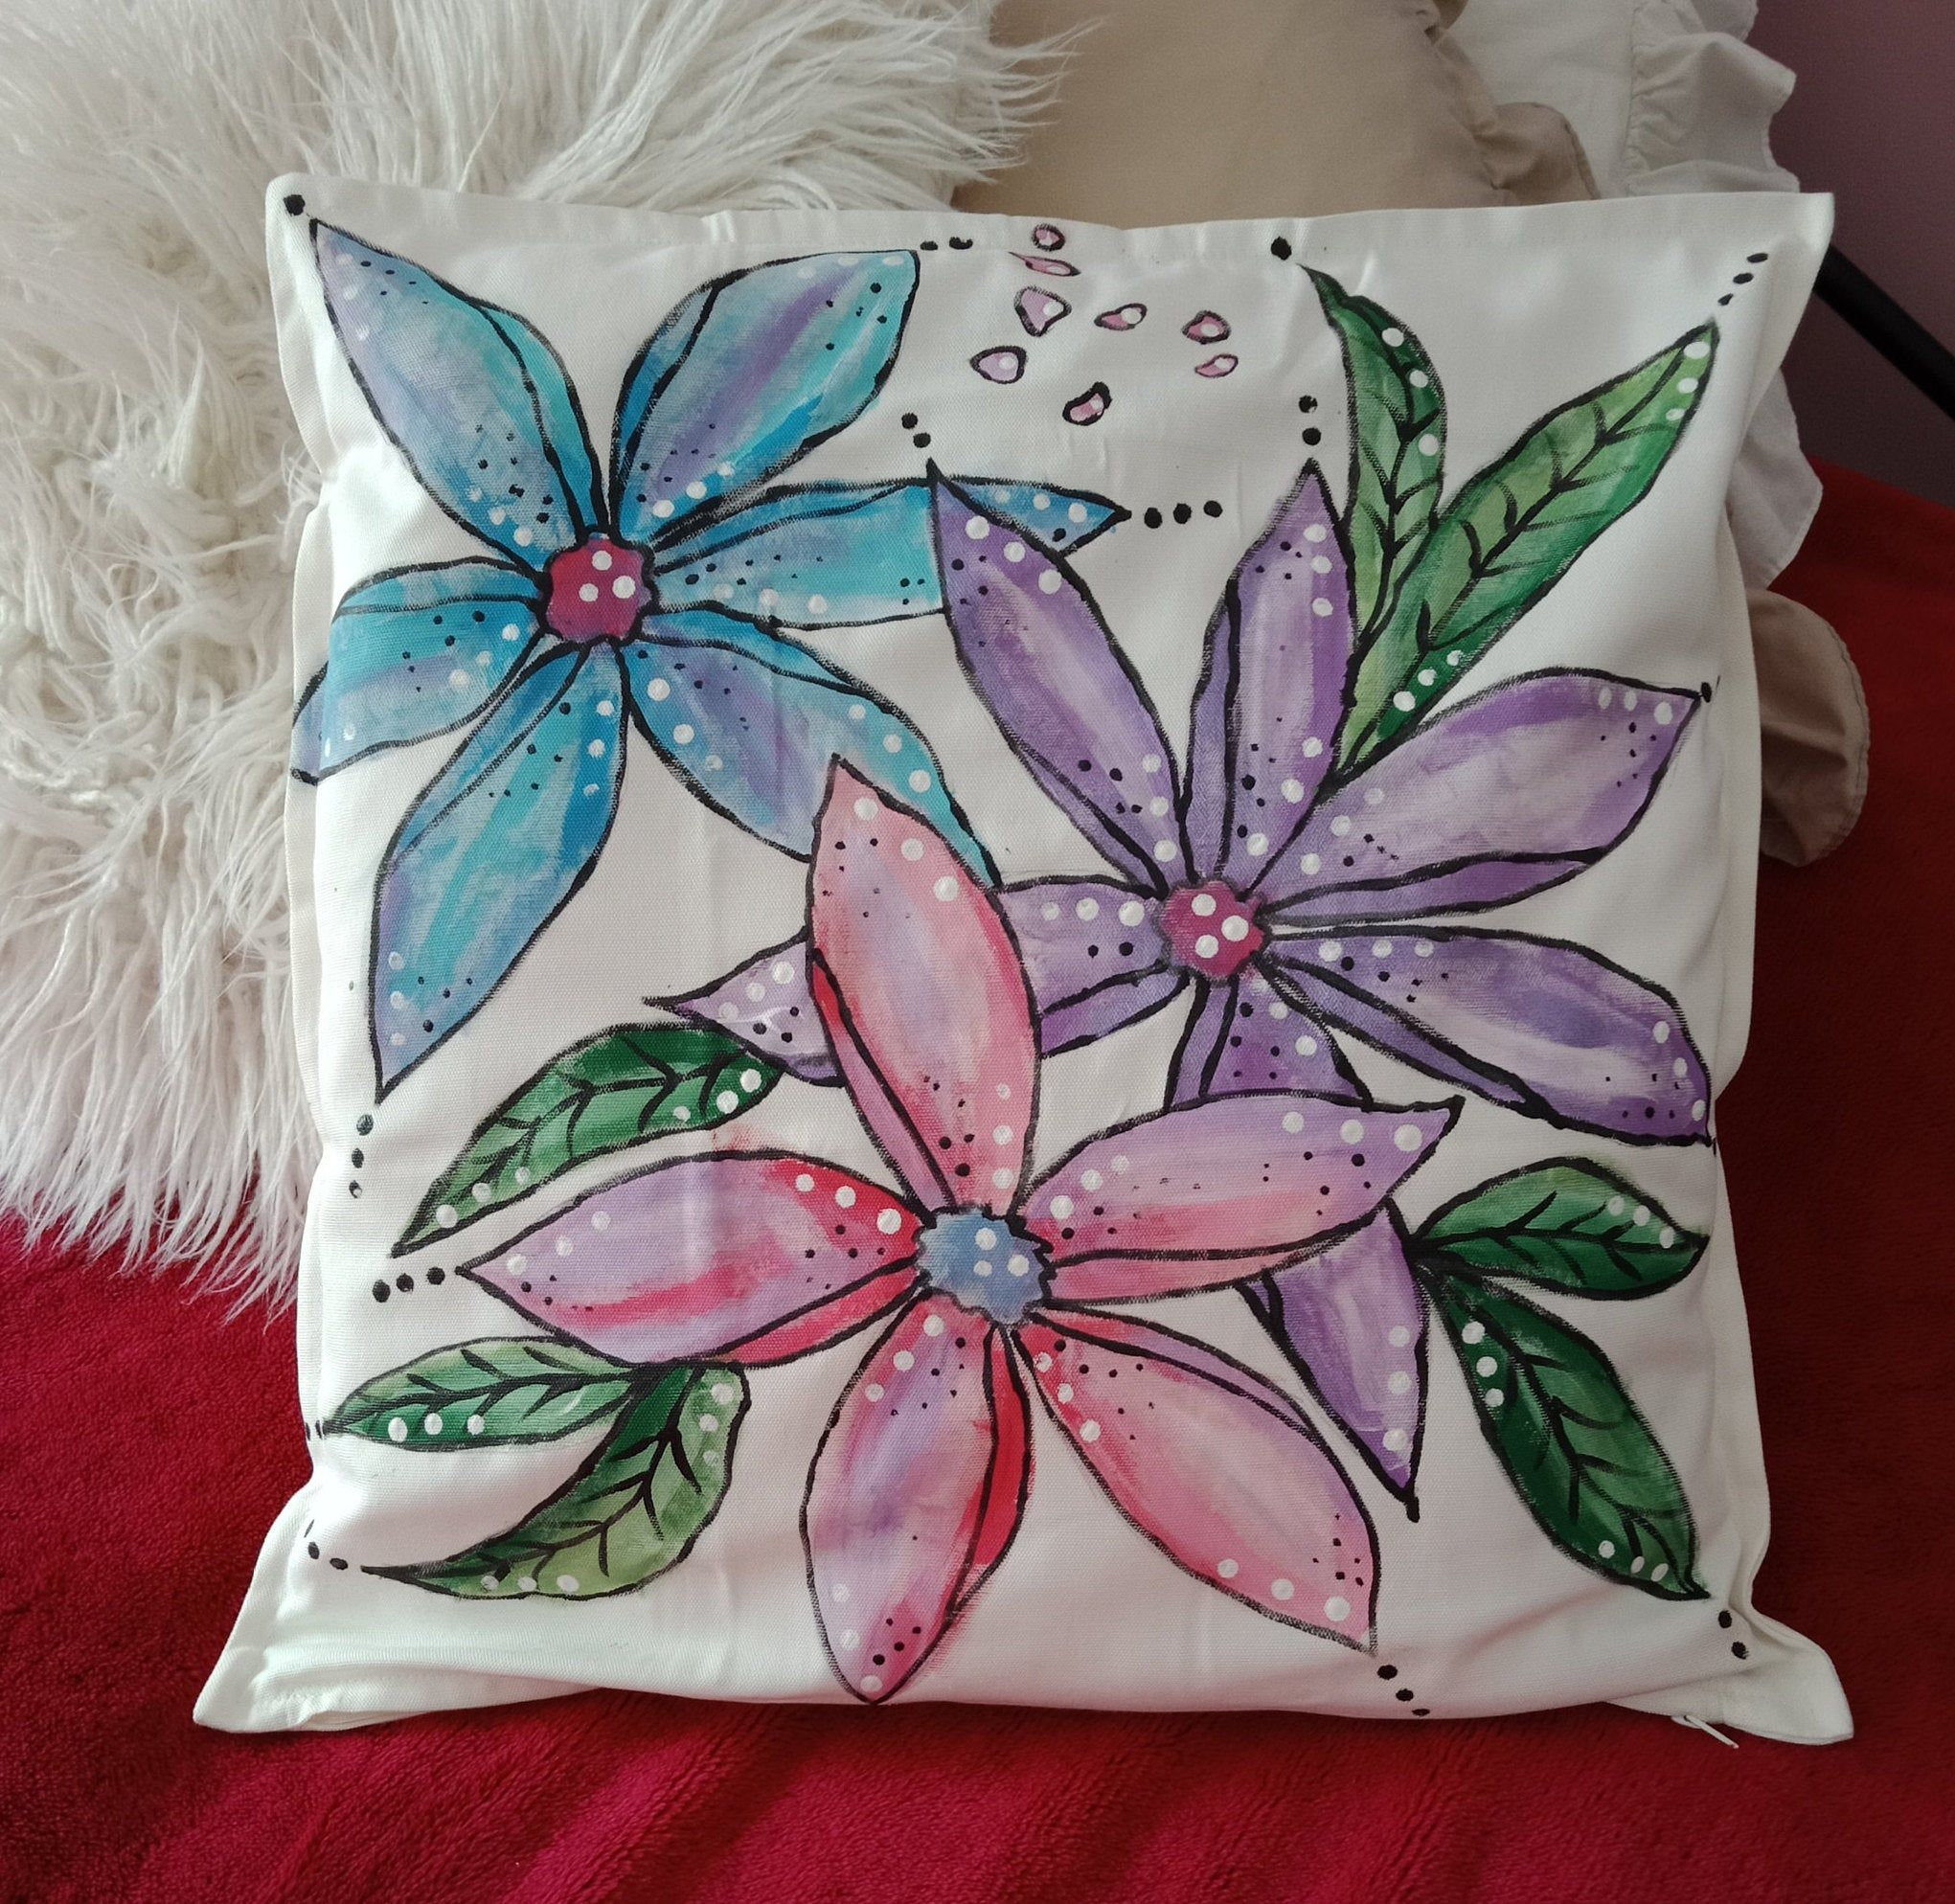 50cm x 50cm Throw Pillow Cases Cherry Blossoms On Turquoise Cotton Sofa /& Bed Home Decor Design 20 x 20inch Cushion Covers